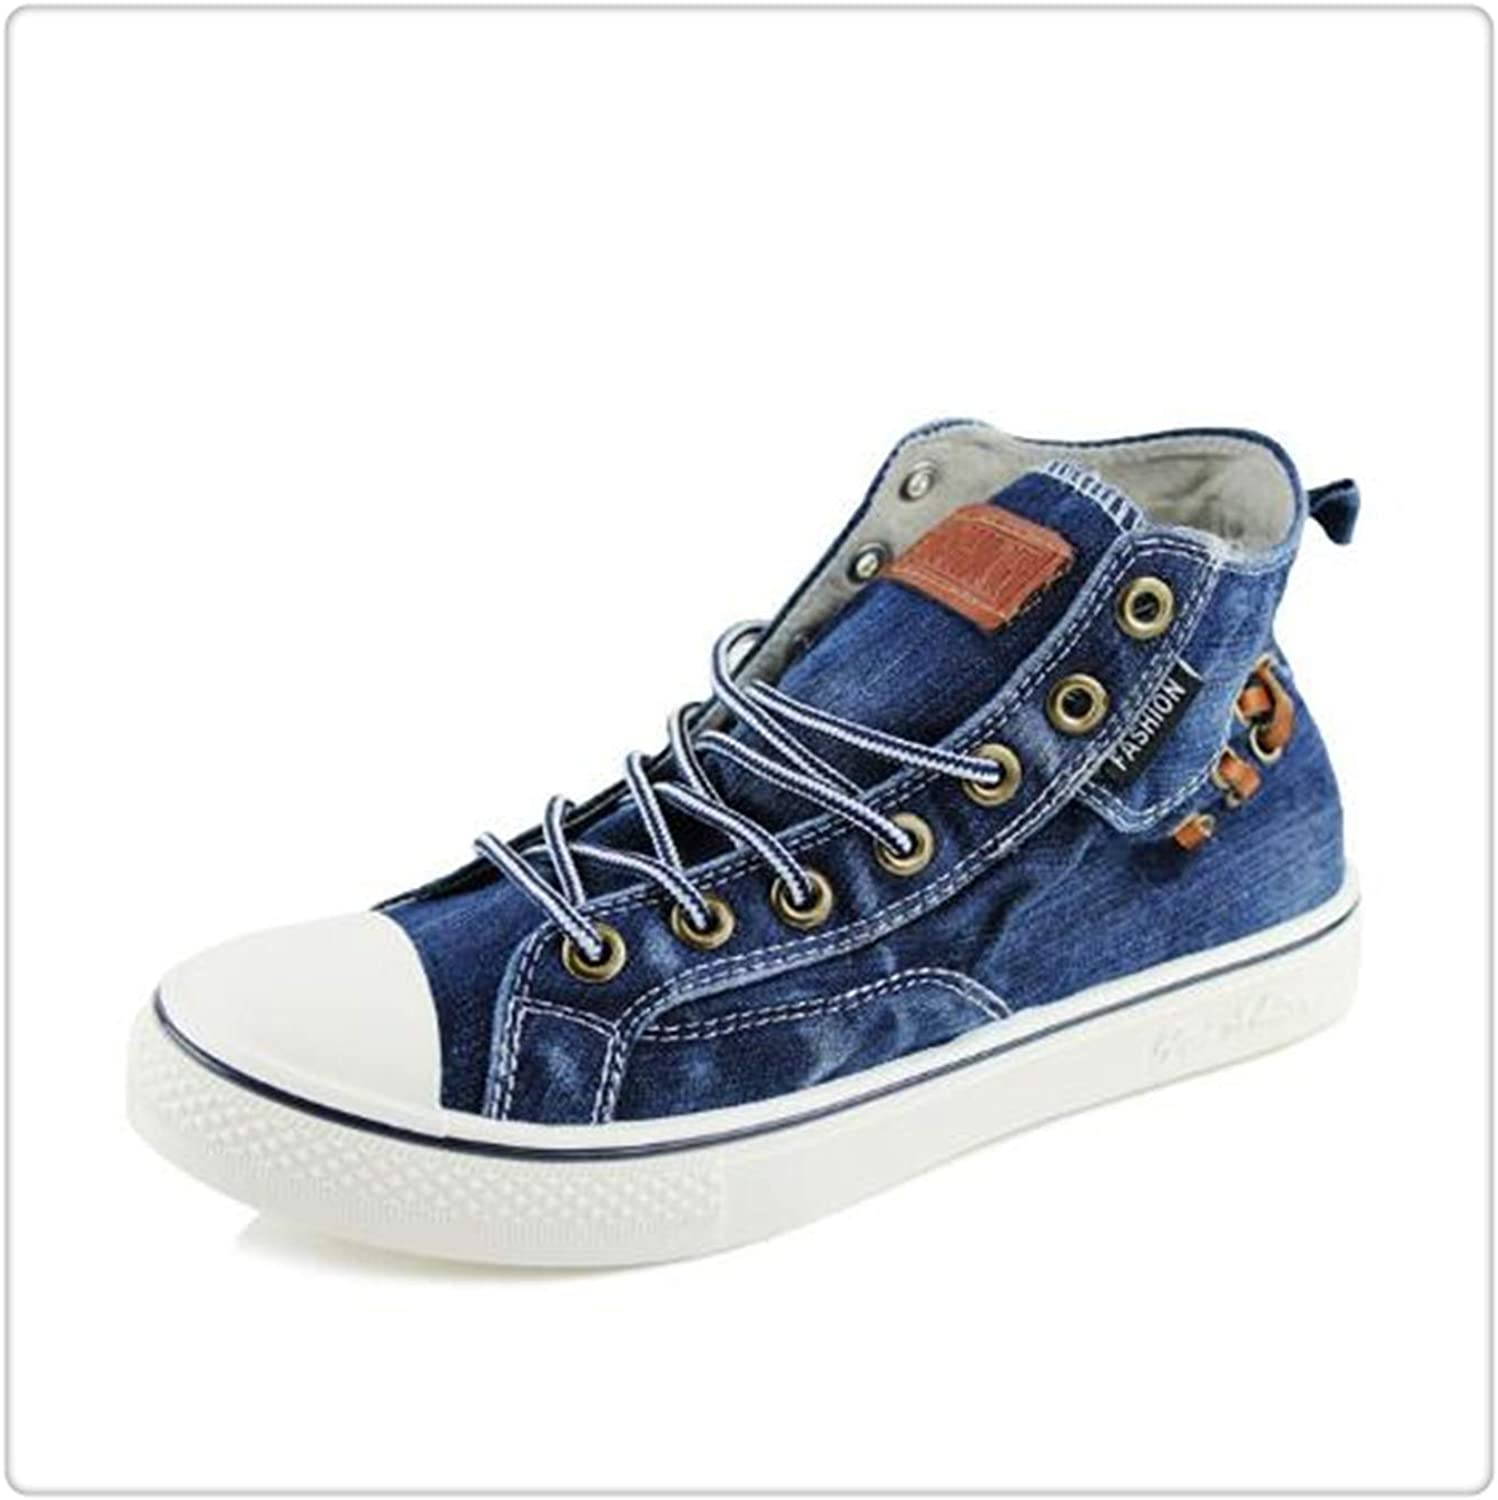 GLOPY& Casual Denim Sneakers Women Vulcanize Platform Sewing Plus Size 44 Canvas shoes